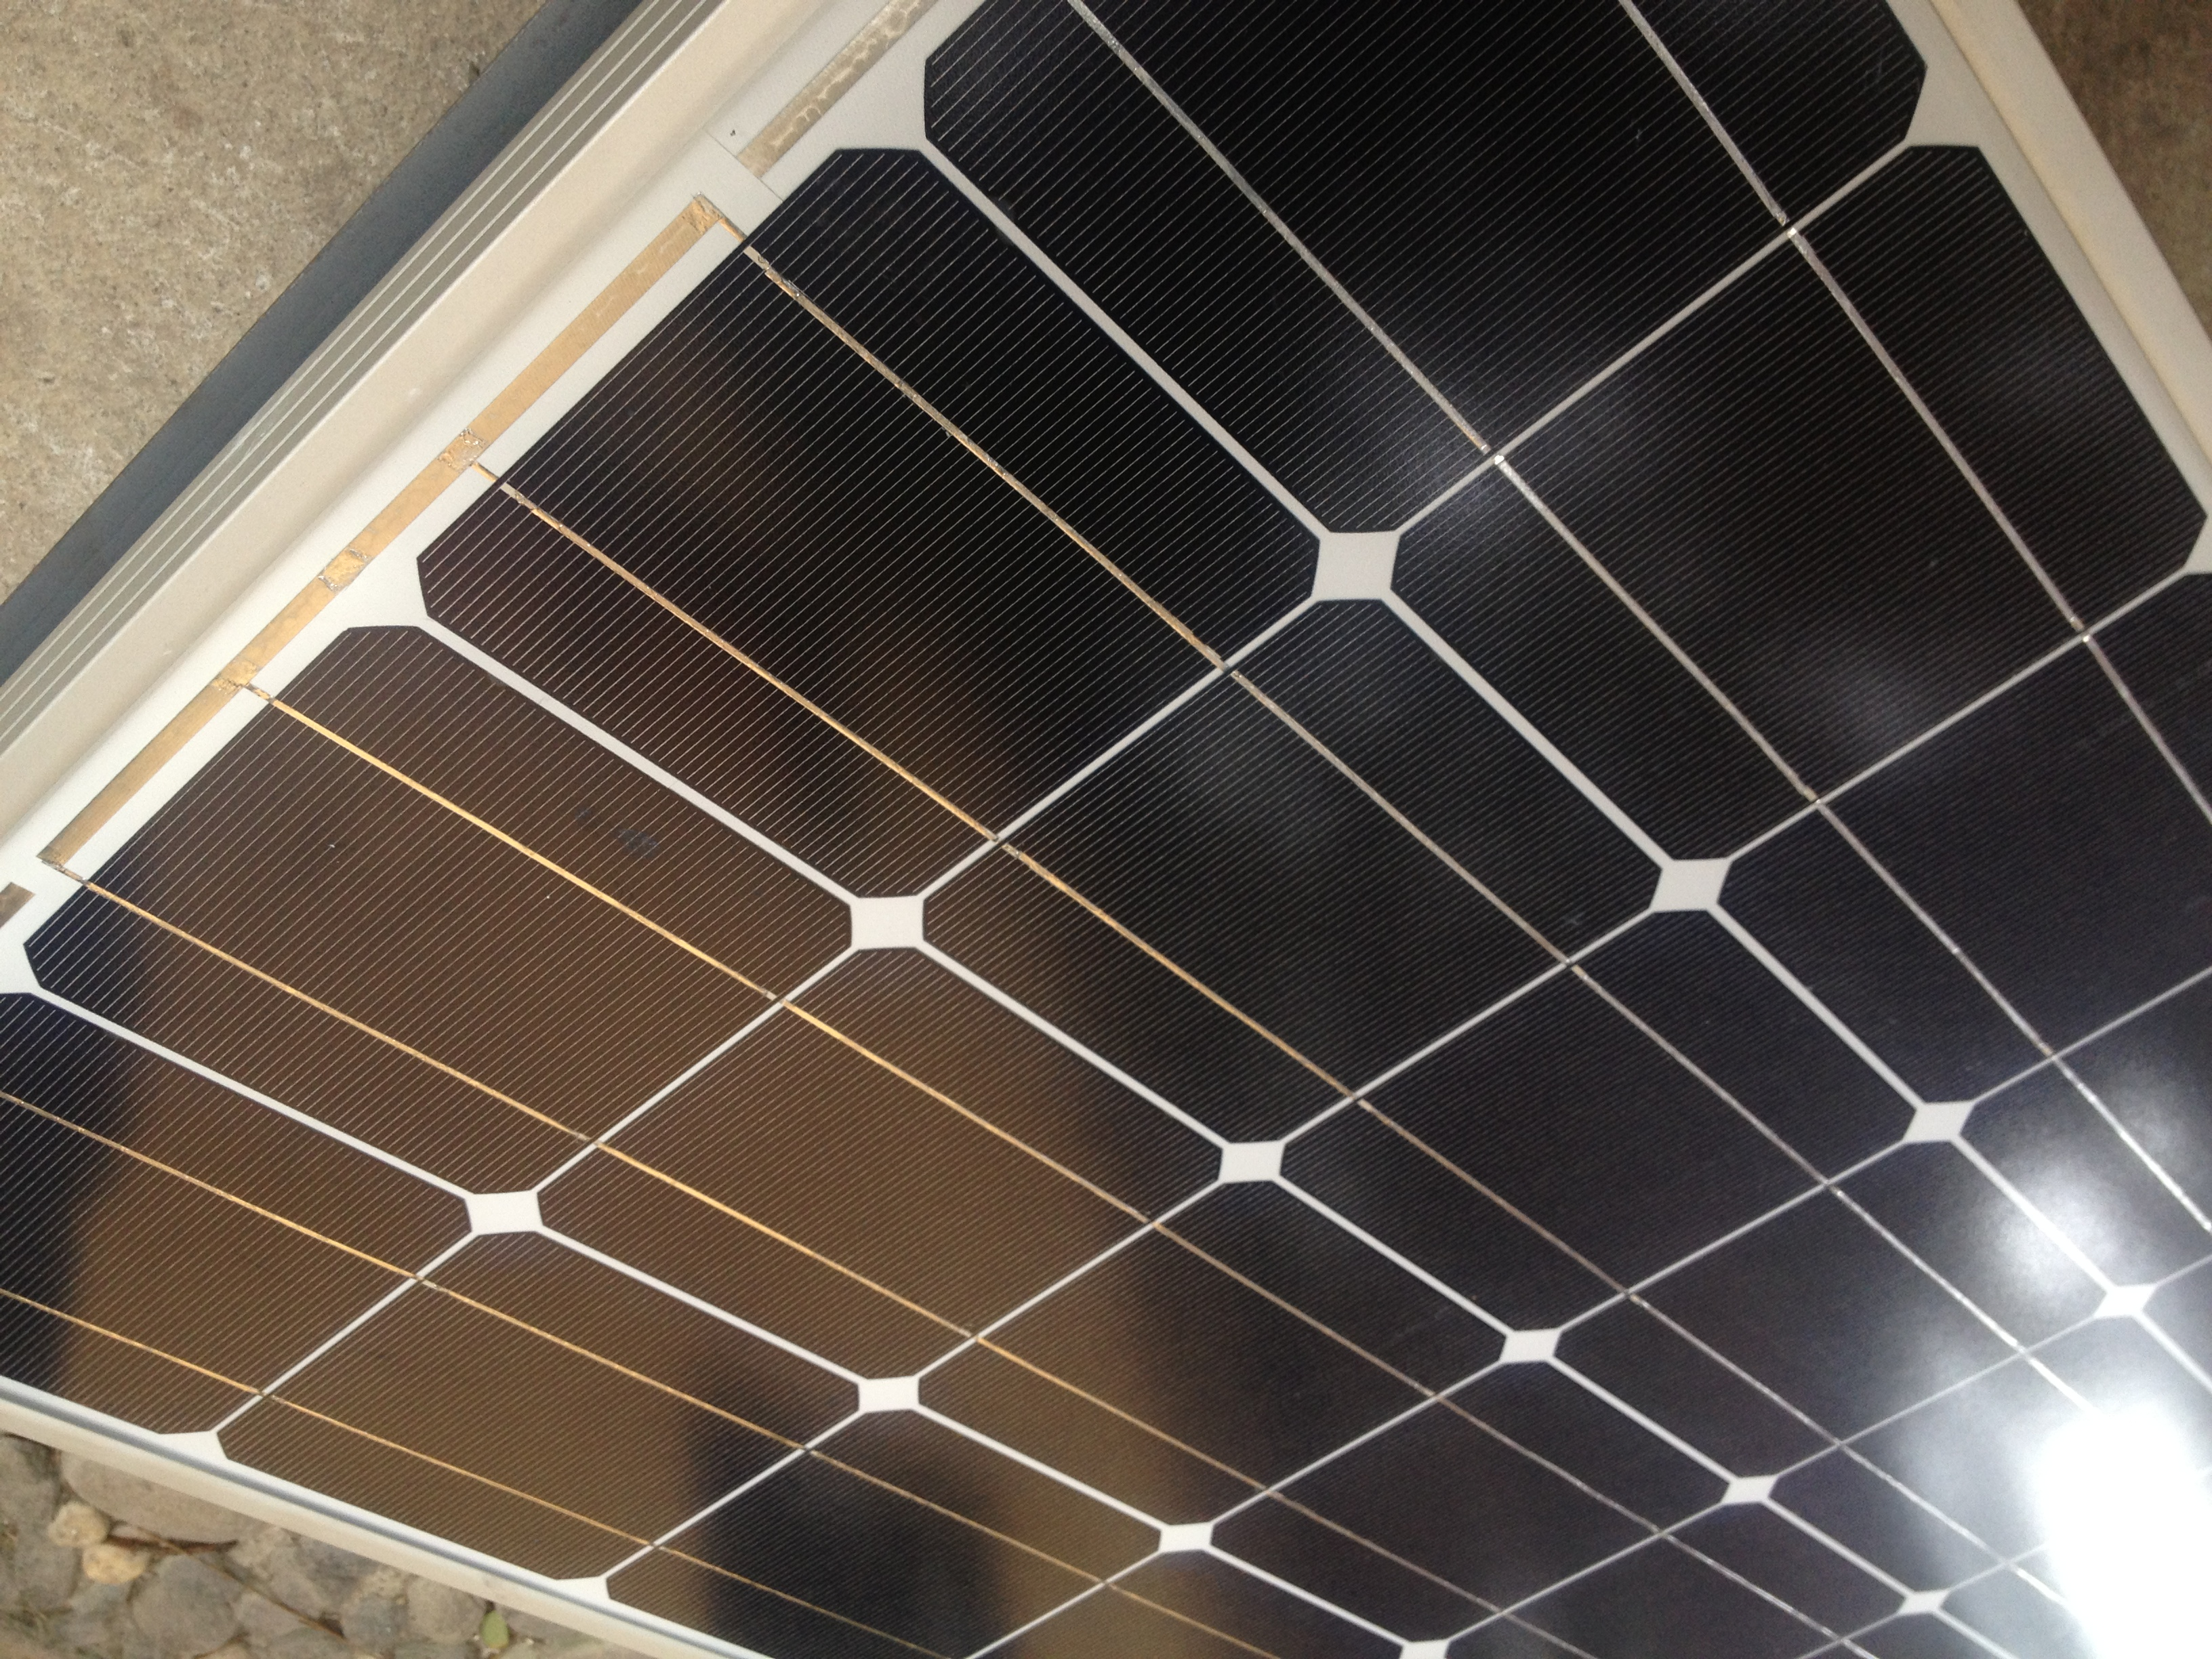 Solar Power 101: Things You Should Know About Getting Solar Panels for Your Home